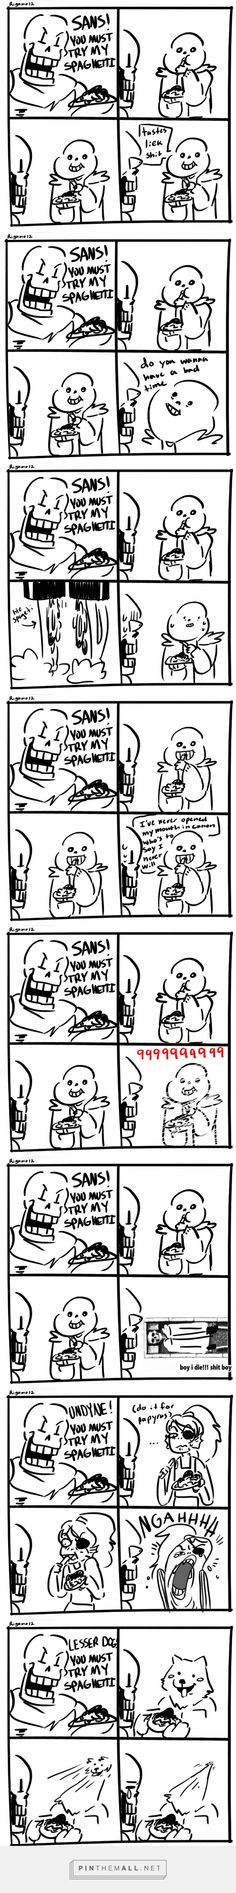 Papyrus and Sans - comic